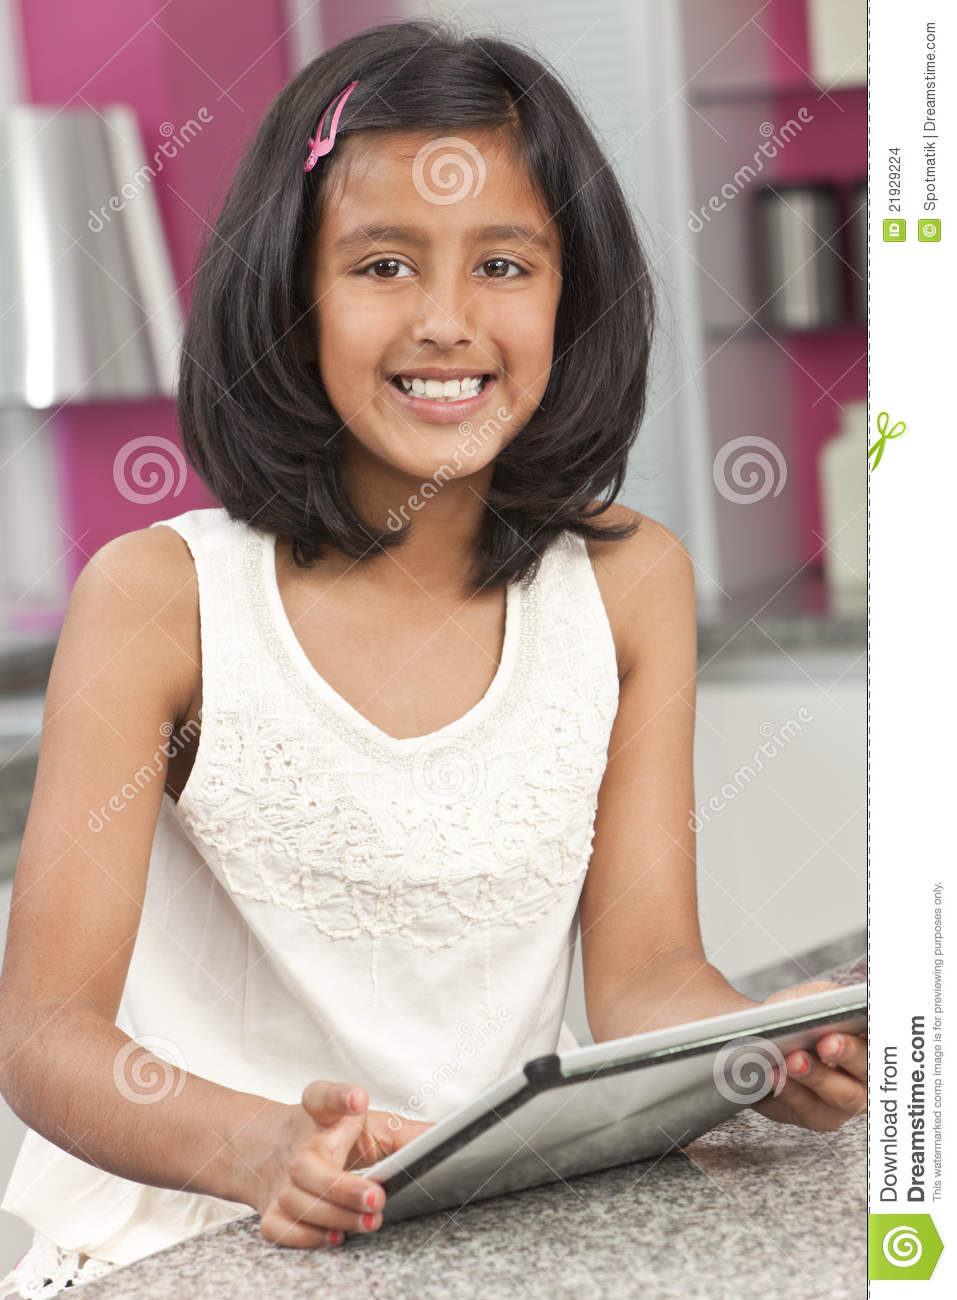 Asian Indian Girl Child Using Tablet Computer Stock Photo -9058